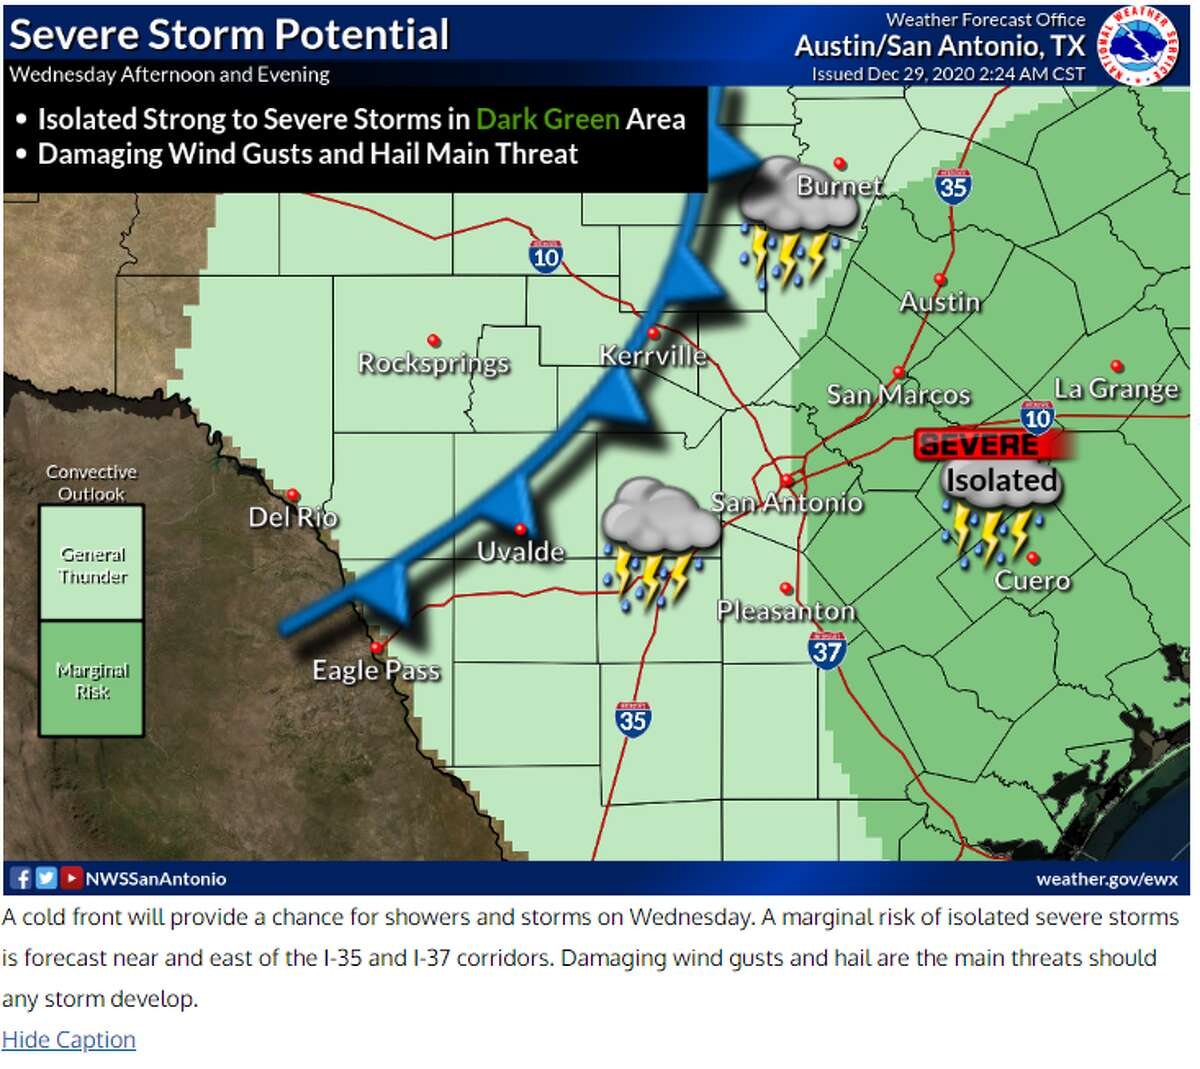 San Antonians better brace for the next cold front coming on Wednesday afternoon that will bring a chance for severe weather with possible hail and gusty winds.